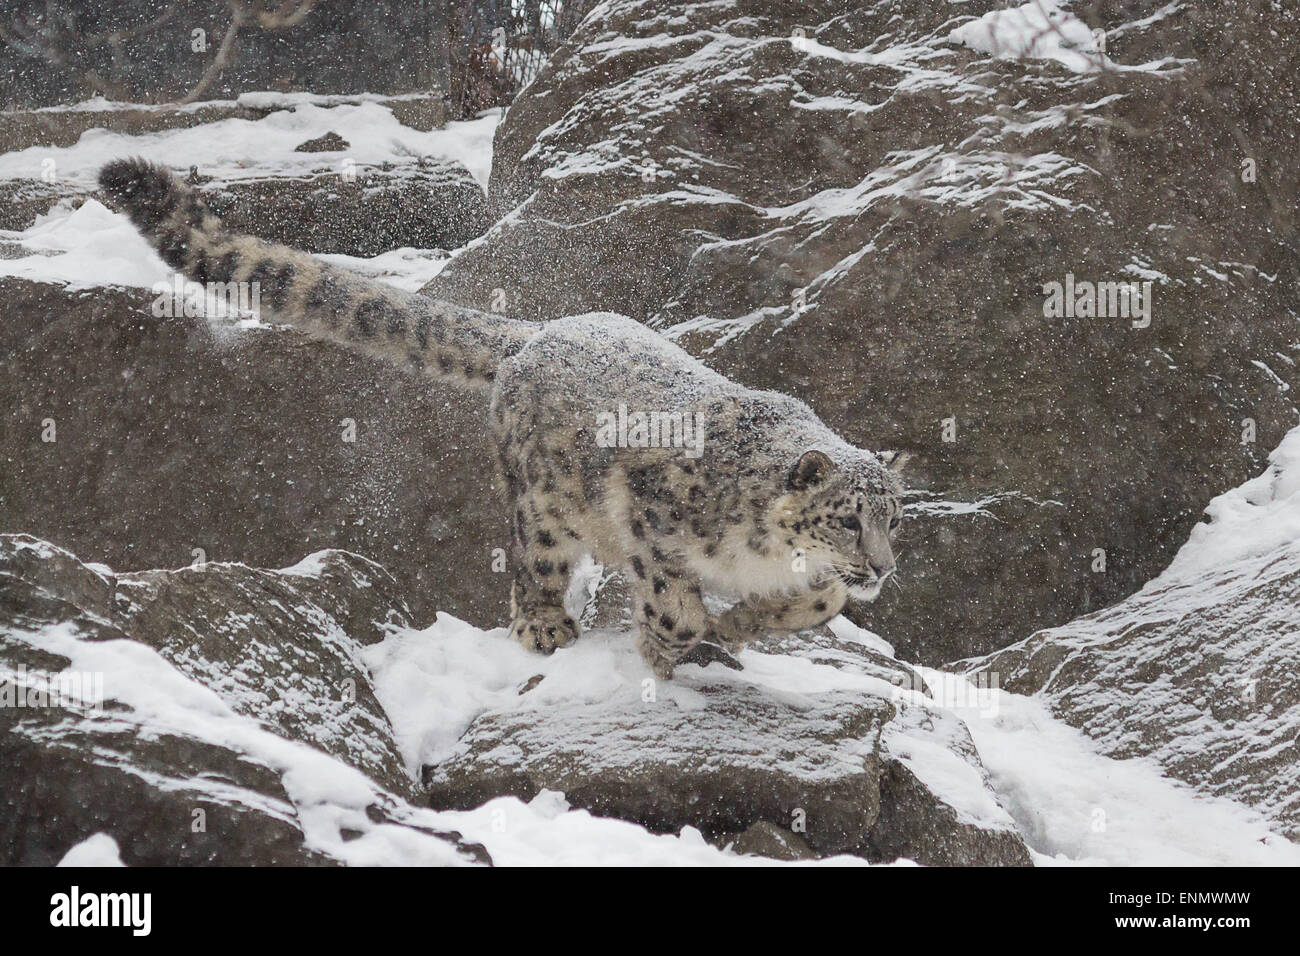 Snow Leopard- A young snow leopard takes a leap from a rock onto an unexpecting fellow snow leopard - Stock Image